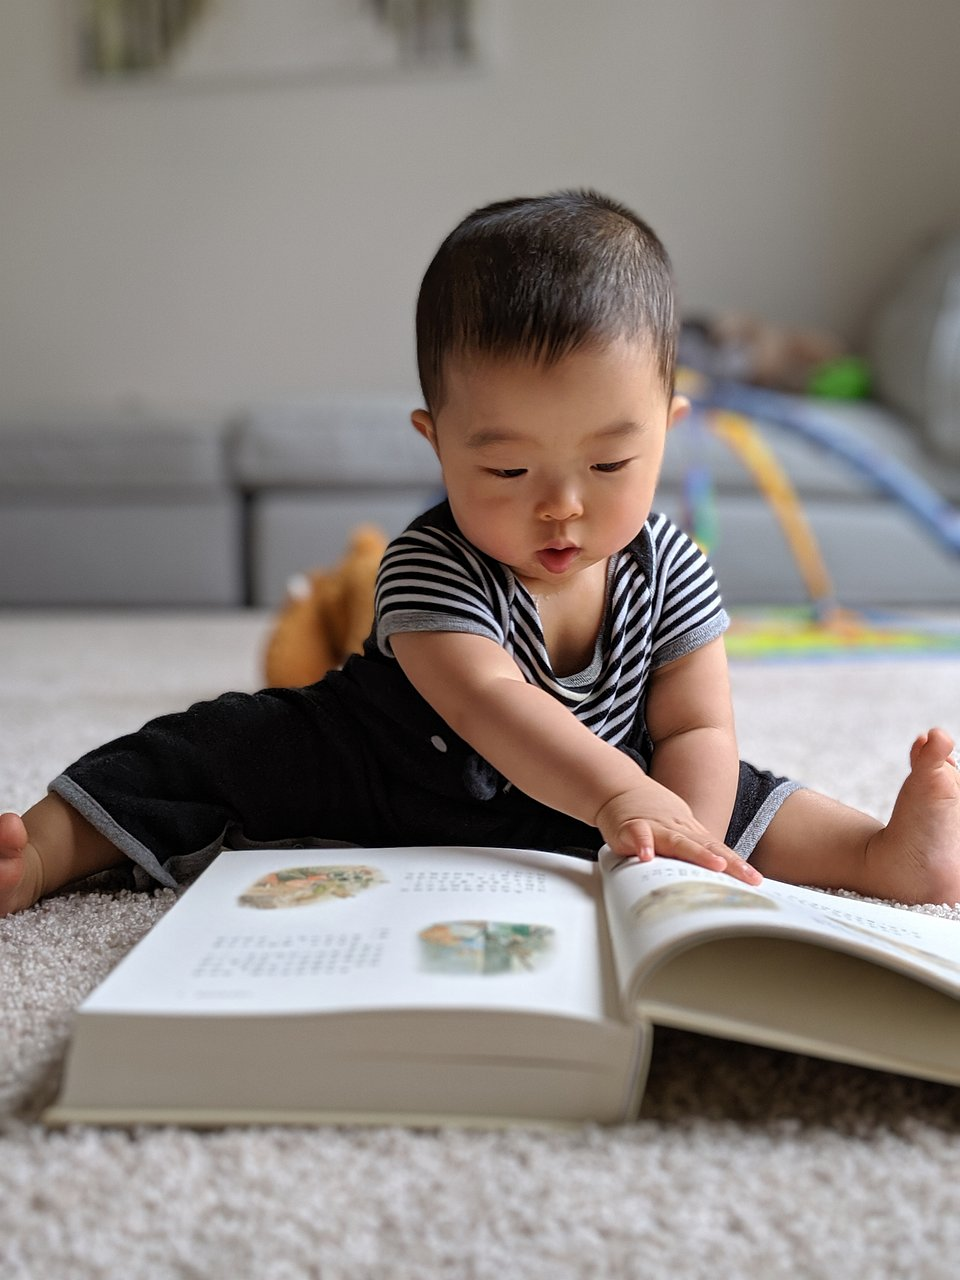 A baby attempting to read quite a thick book. We wonder what he thinks about it. (Haimei Li/Agora)